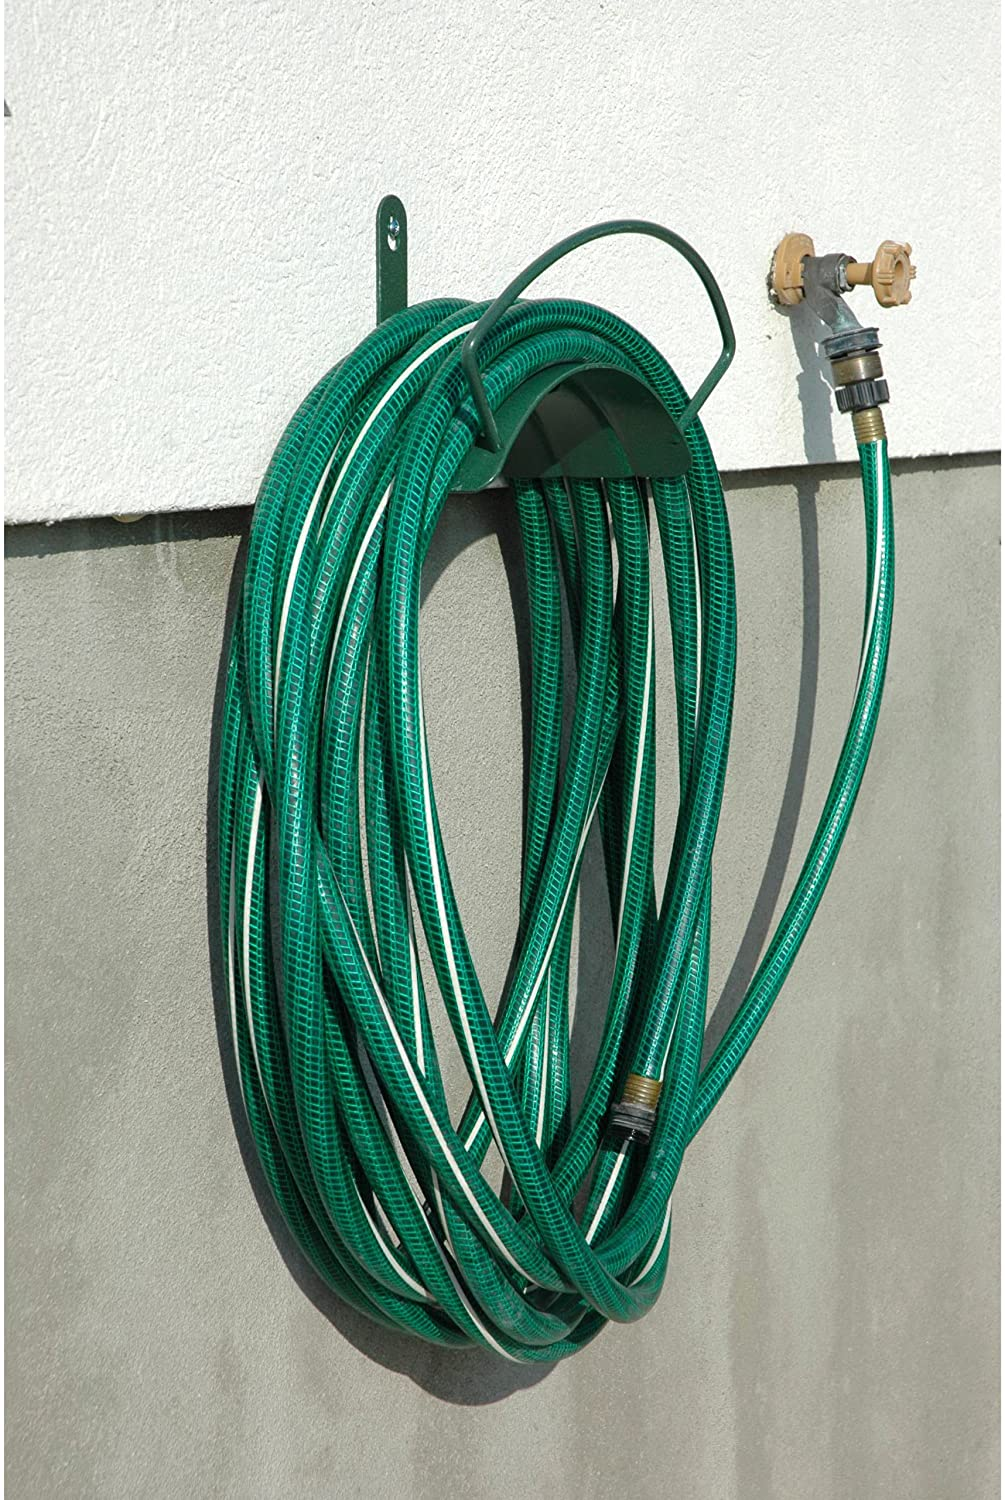 Best Garden Hose Hanger Reviews and Buying Guide 2021